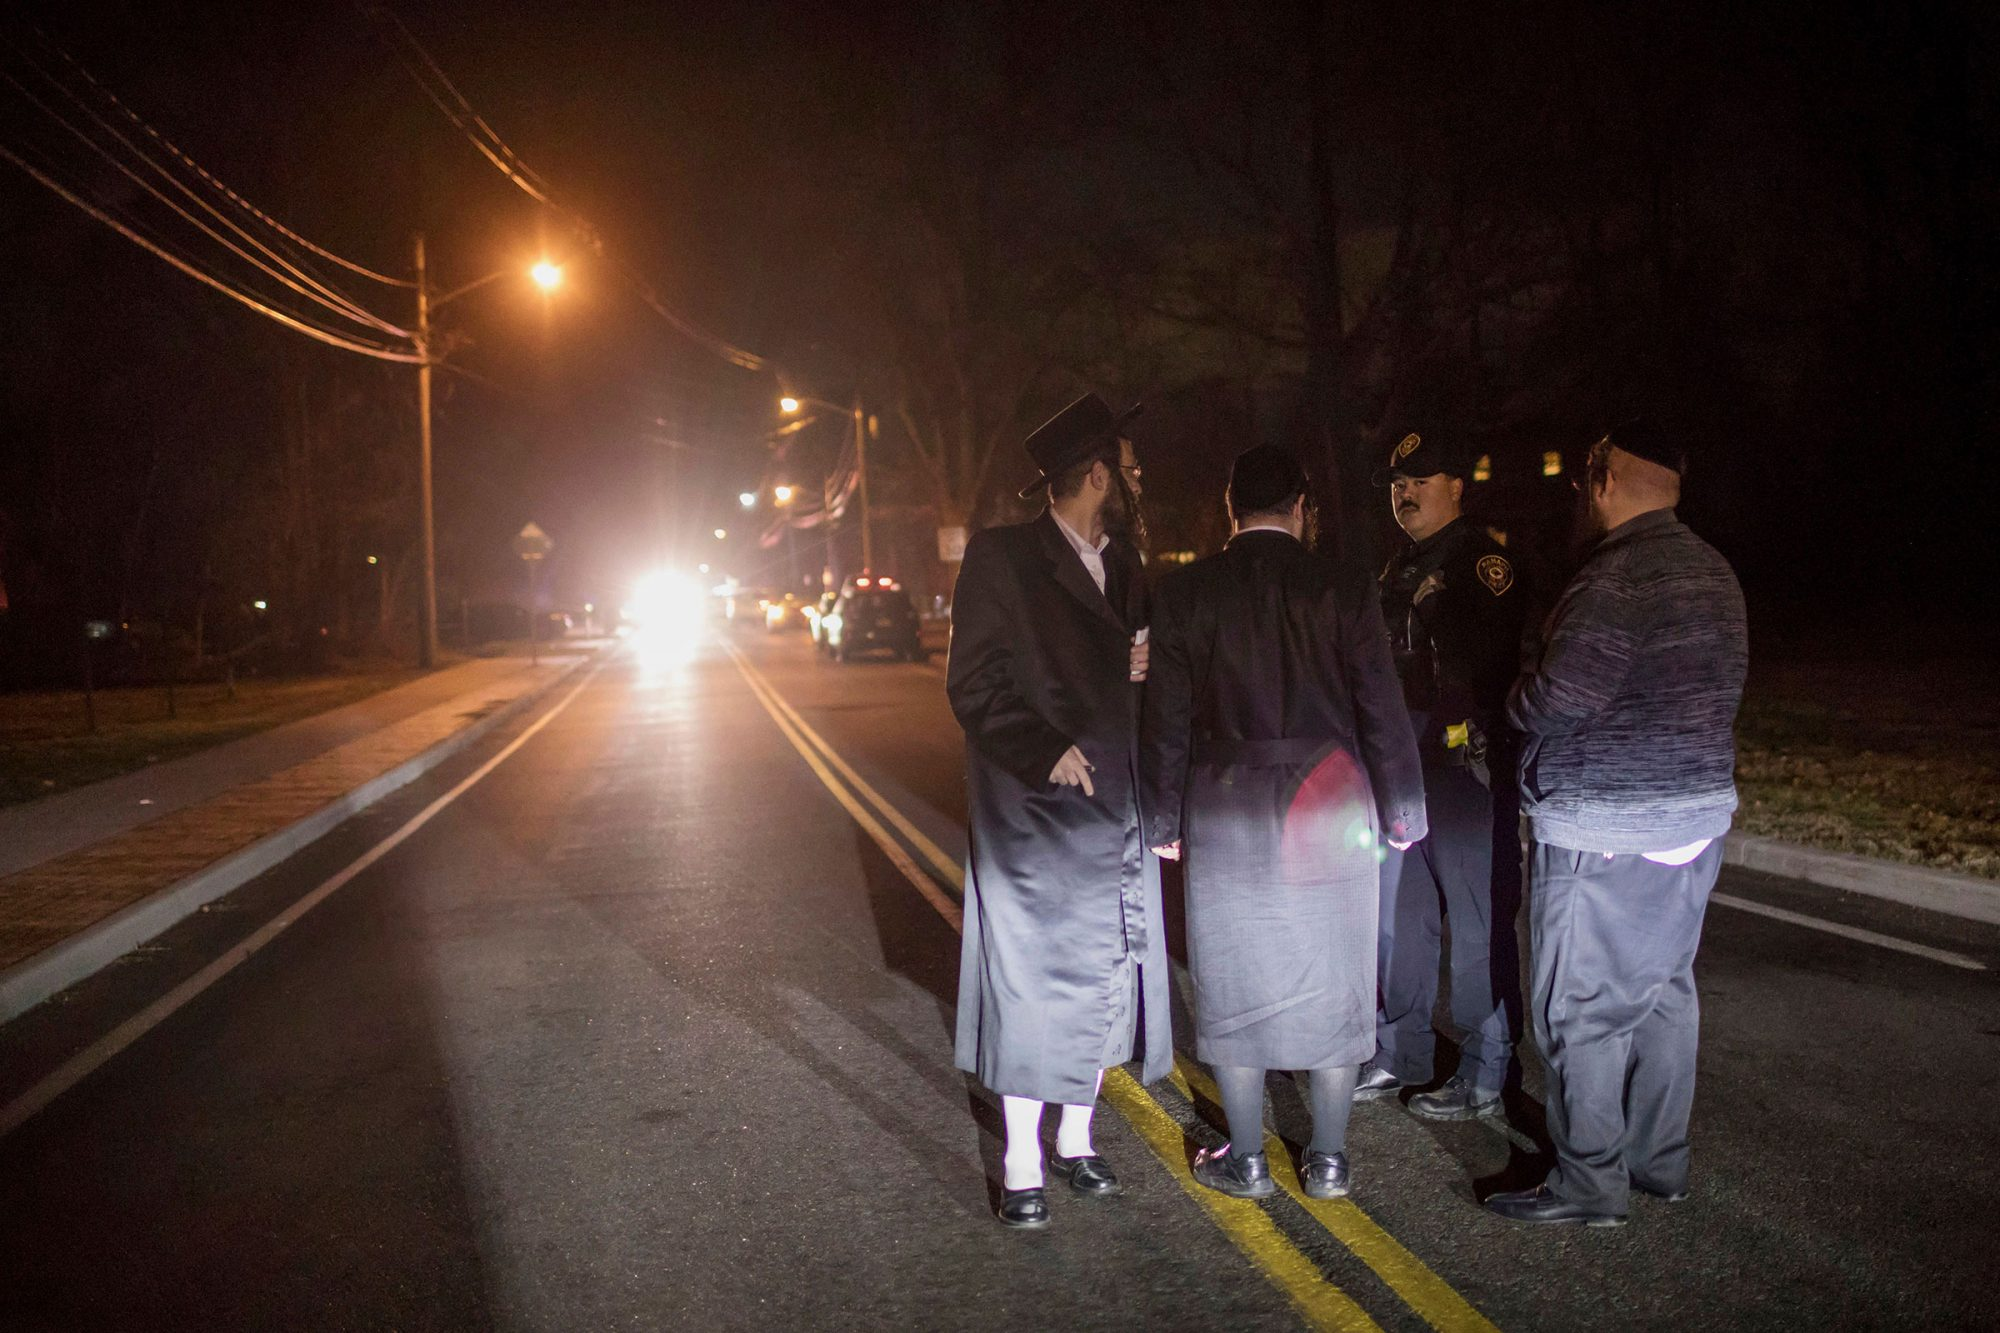 The home of rabbi, Chaim Rottenbergin Monsey, is seen in New York on December 29, 2019 after a machete attack